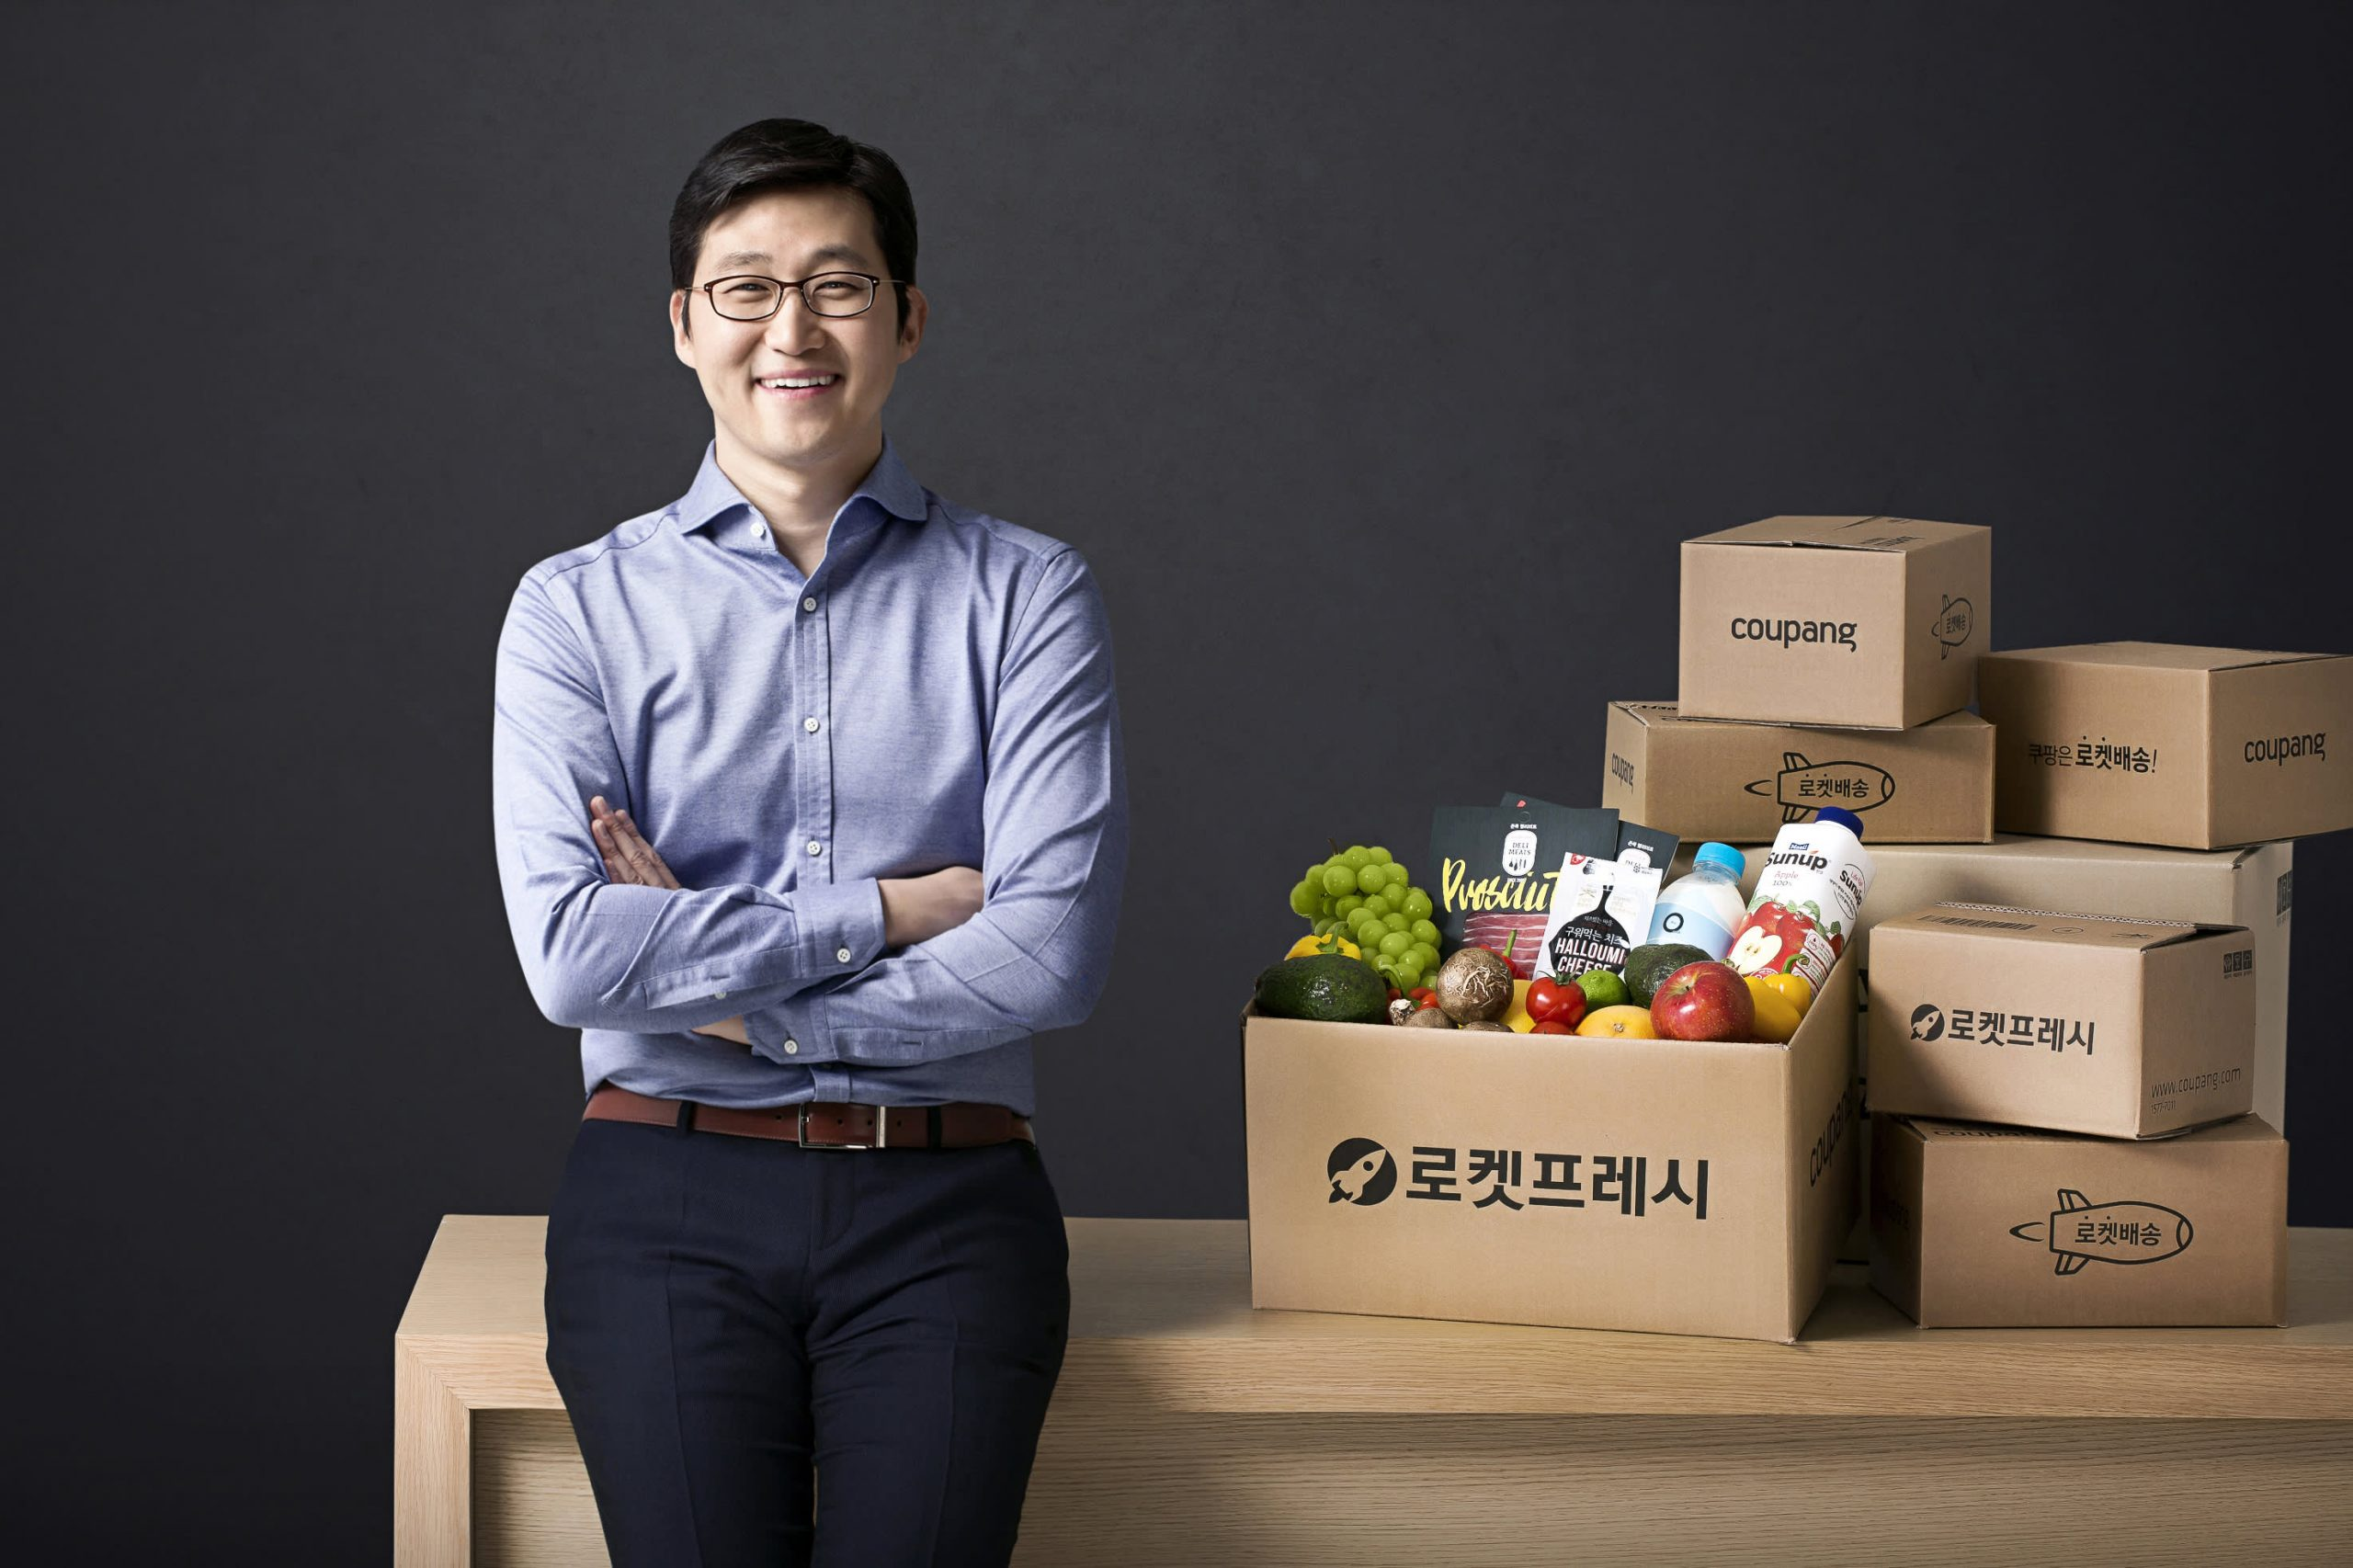 Shipping to South Korea For Ecommerce